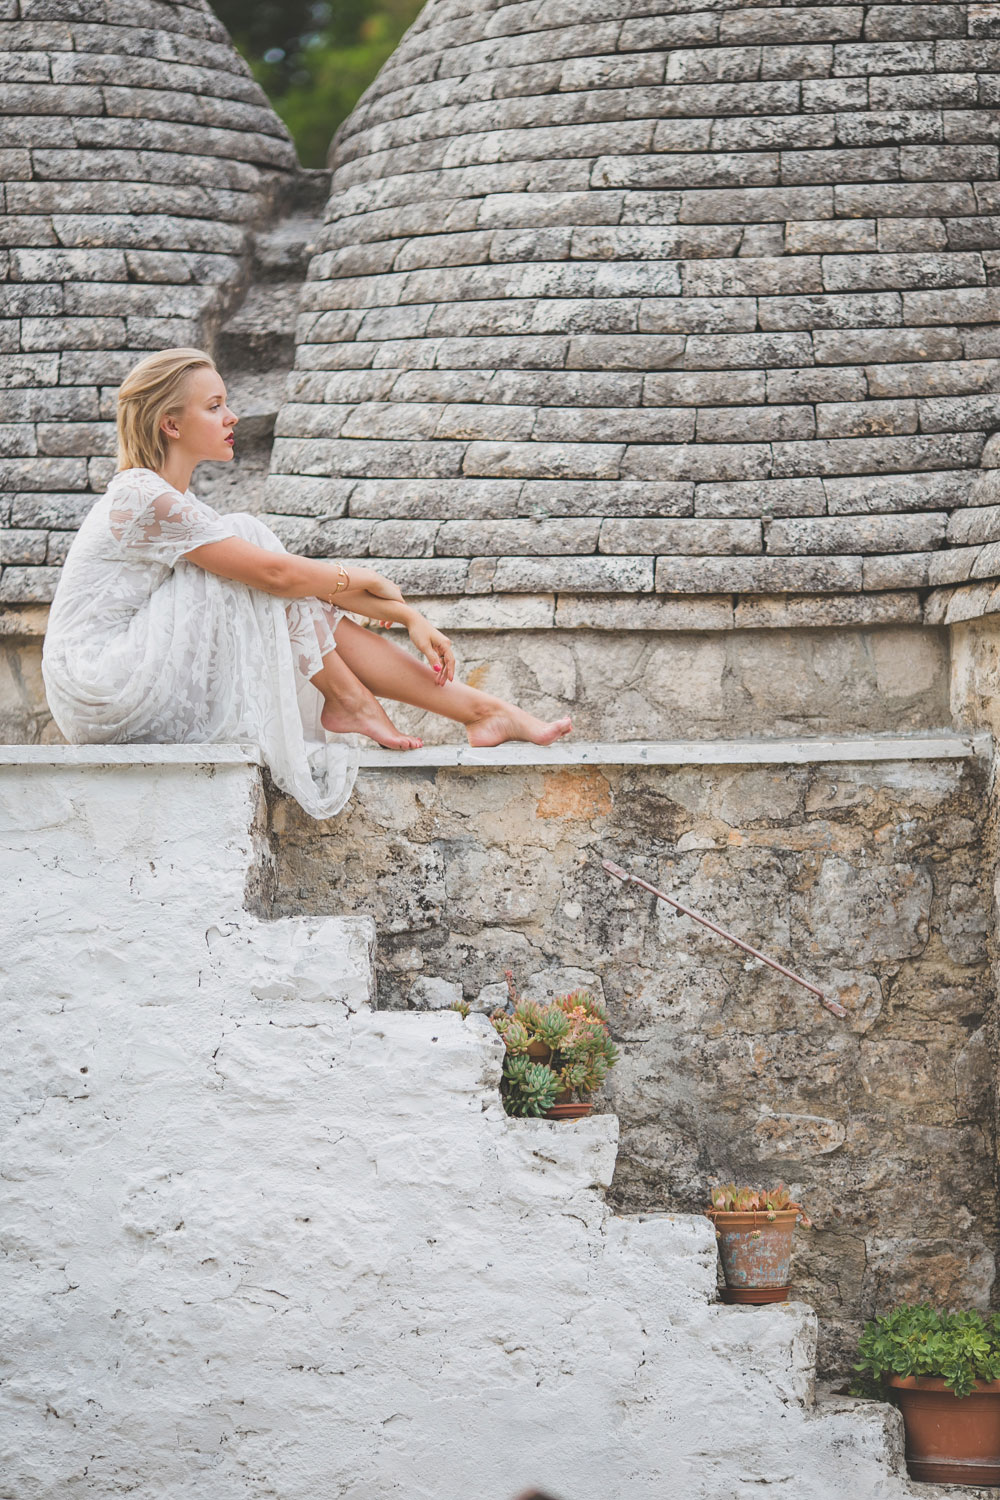 darya-kamalova-thecablook-fashion-lifestyle-blogger-from-thecablook-com-in-agri-trulli-in-puglia-south-italy-wearing-gat-rimon-white-maxi-lace-dress-4033